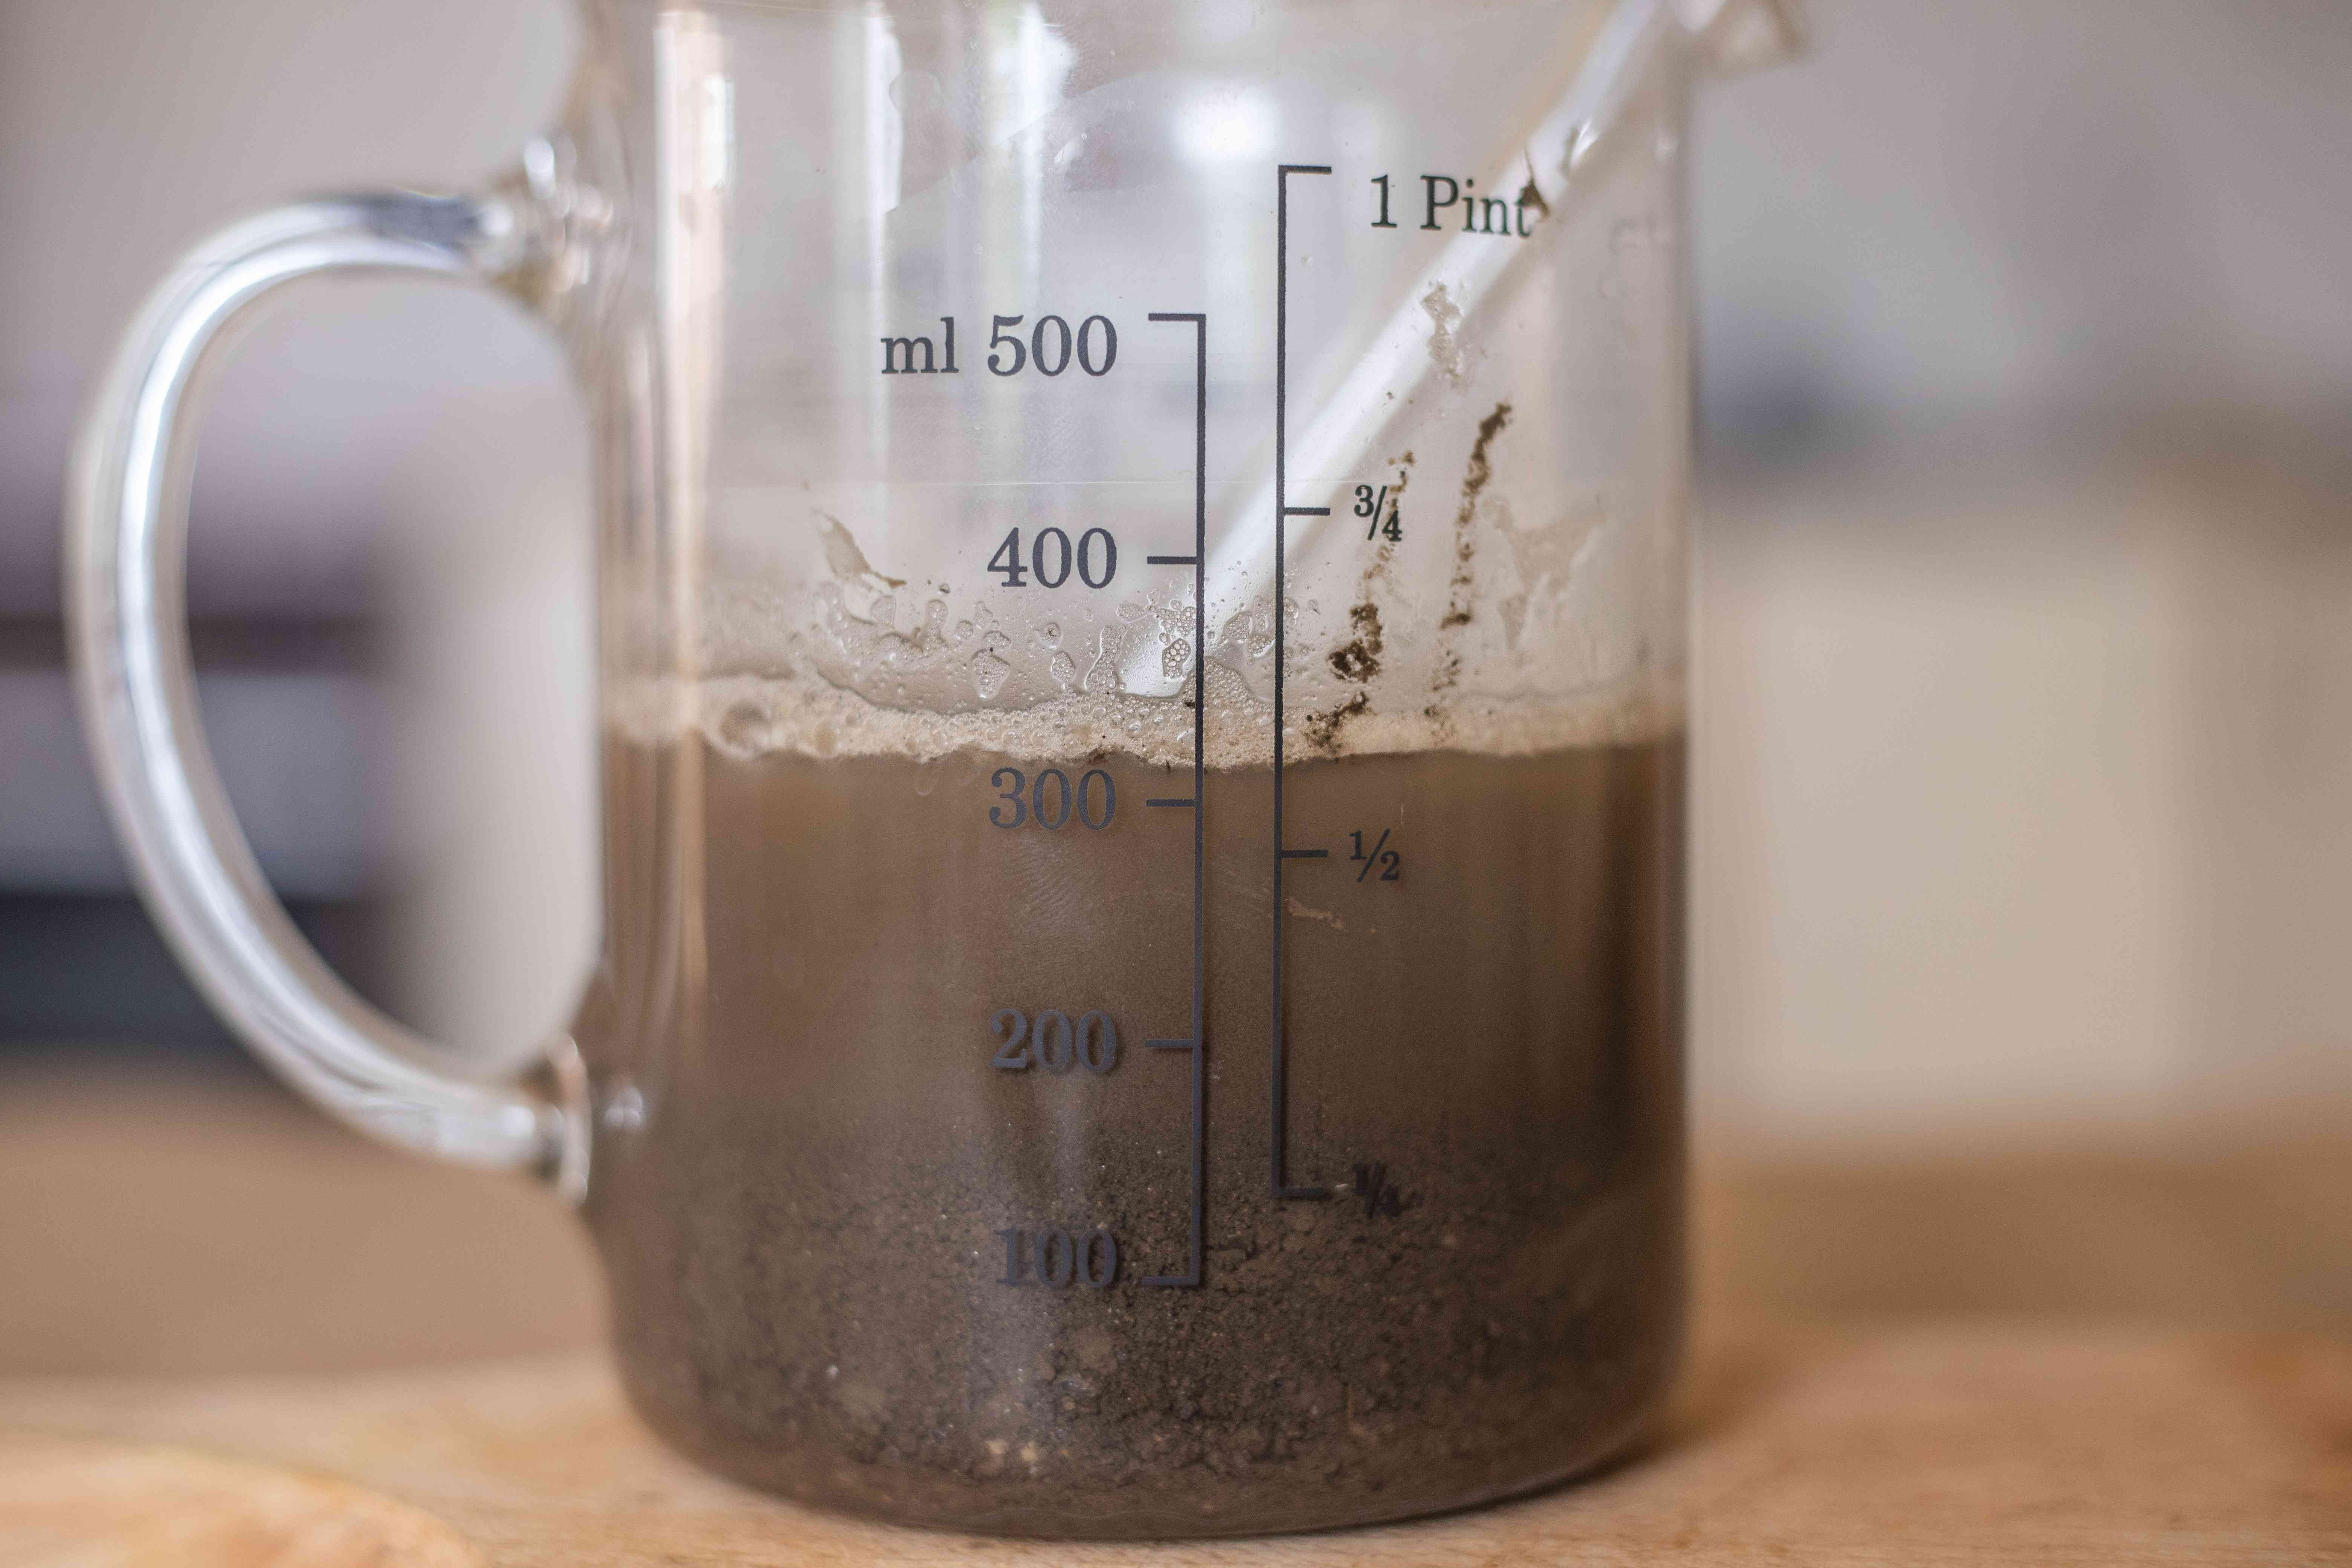 after vinegar is added, see if soil mixture foams or bubbles